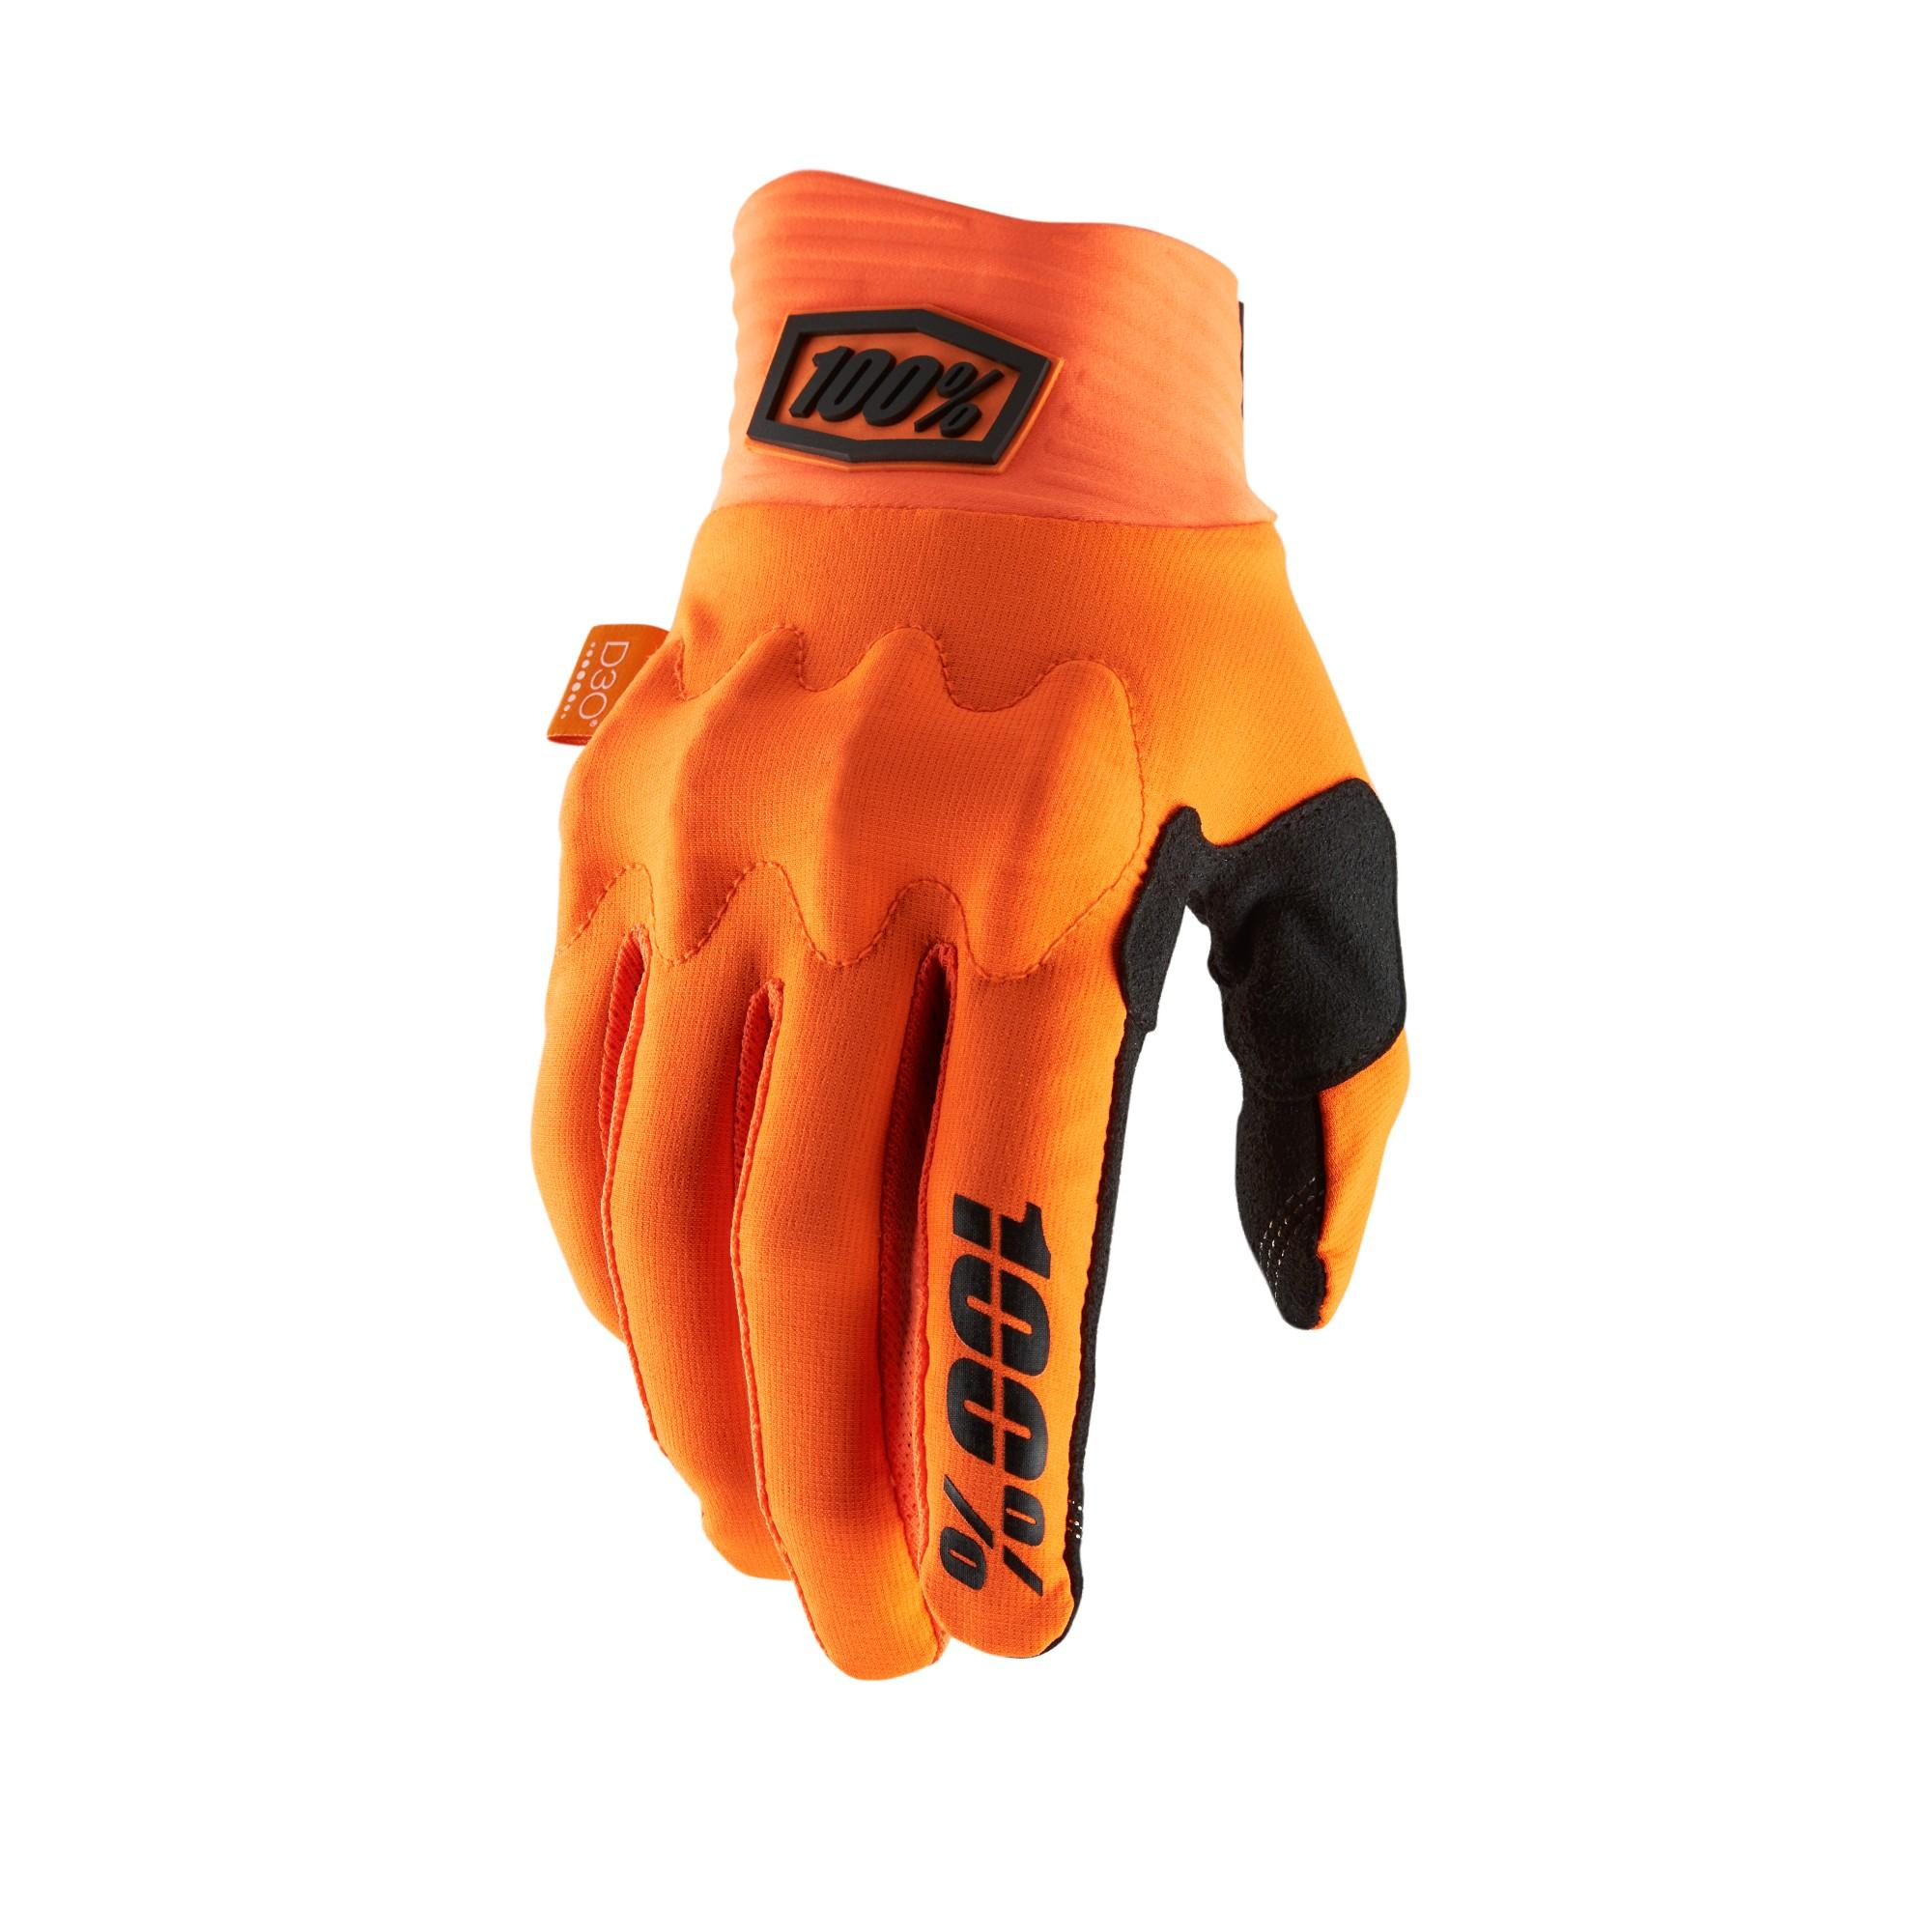 COGNITO 100% Glove Fluo Orange/Black